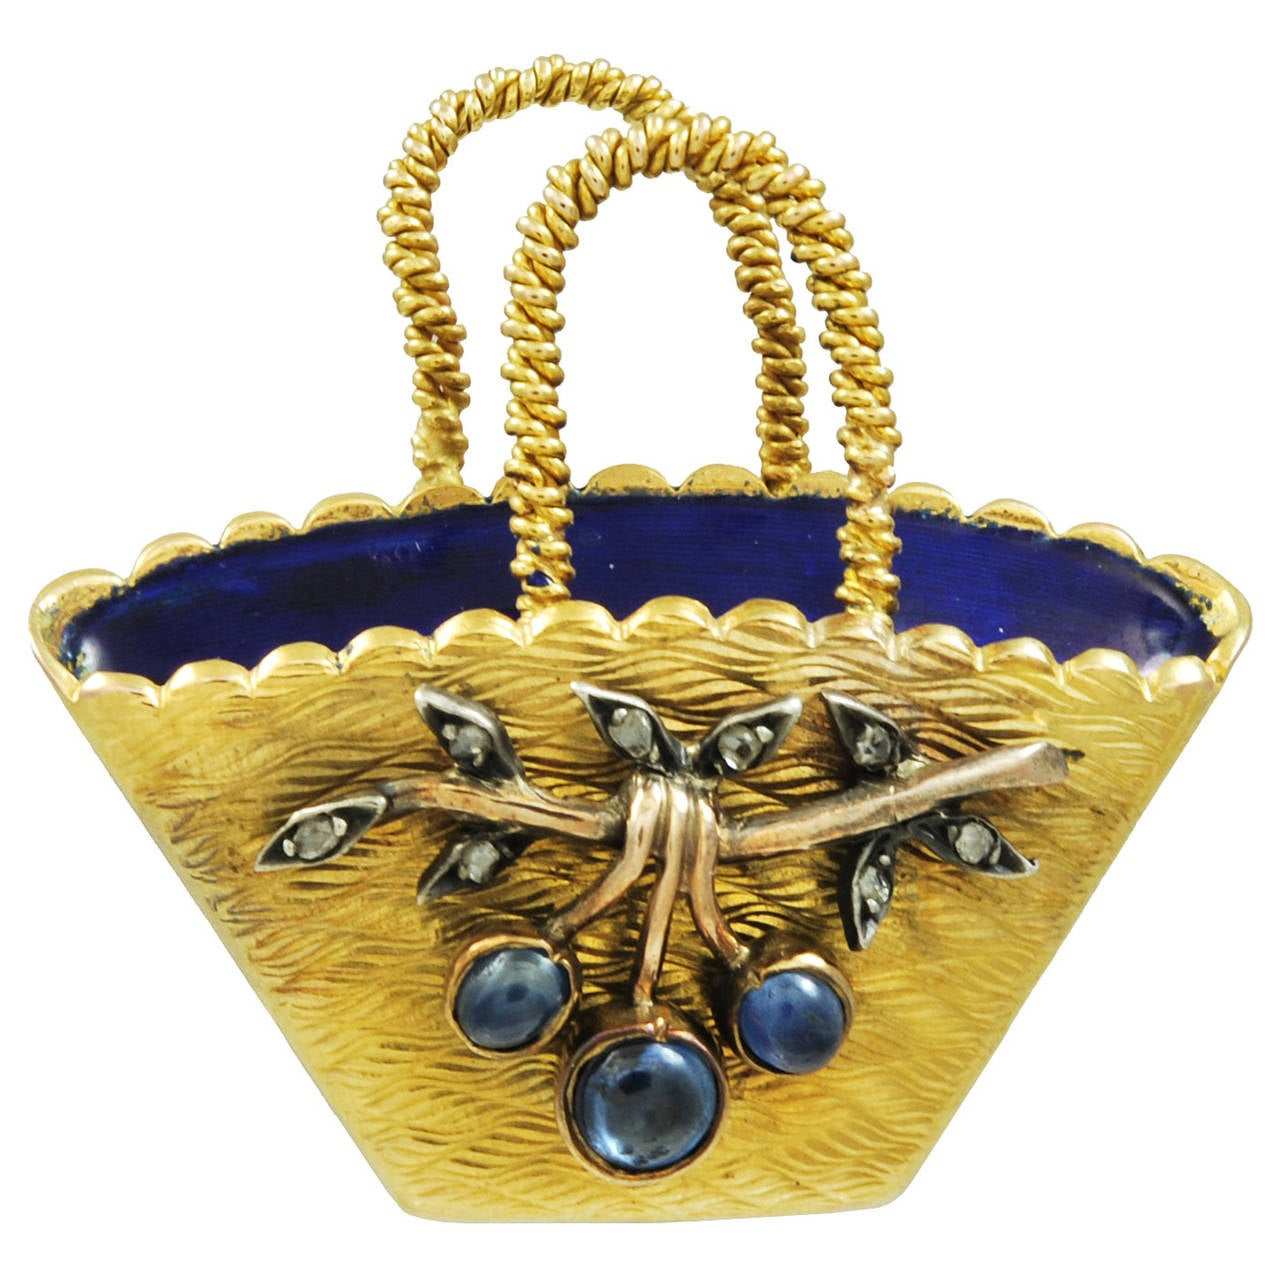 A French 19th century Sapphire, Diamond & Enamel Basket Brooch